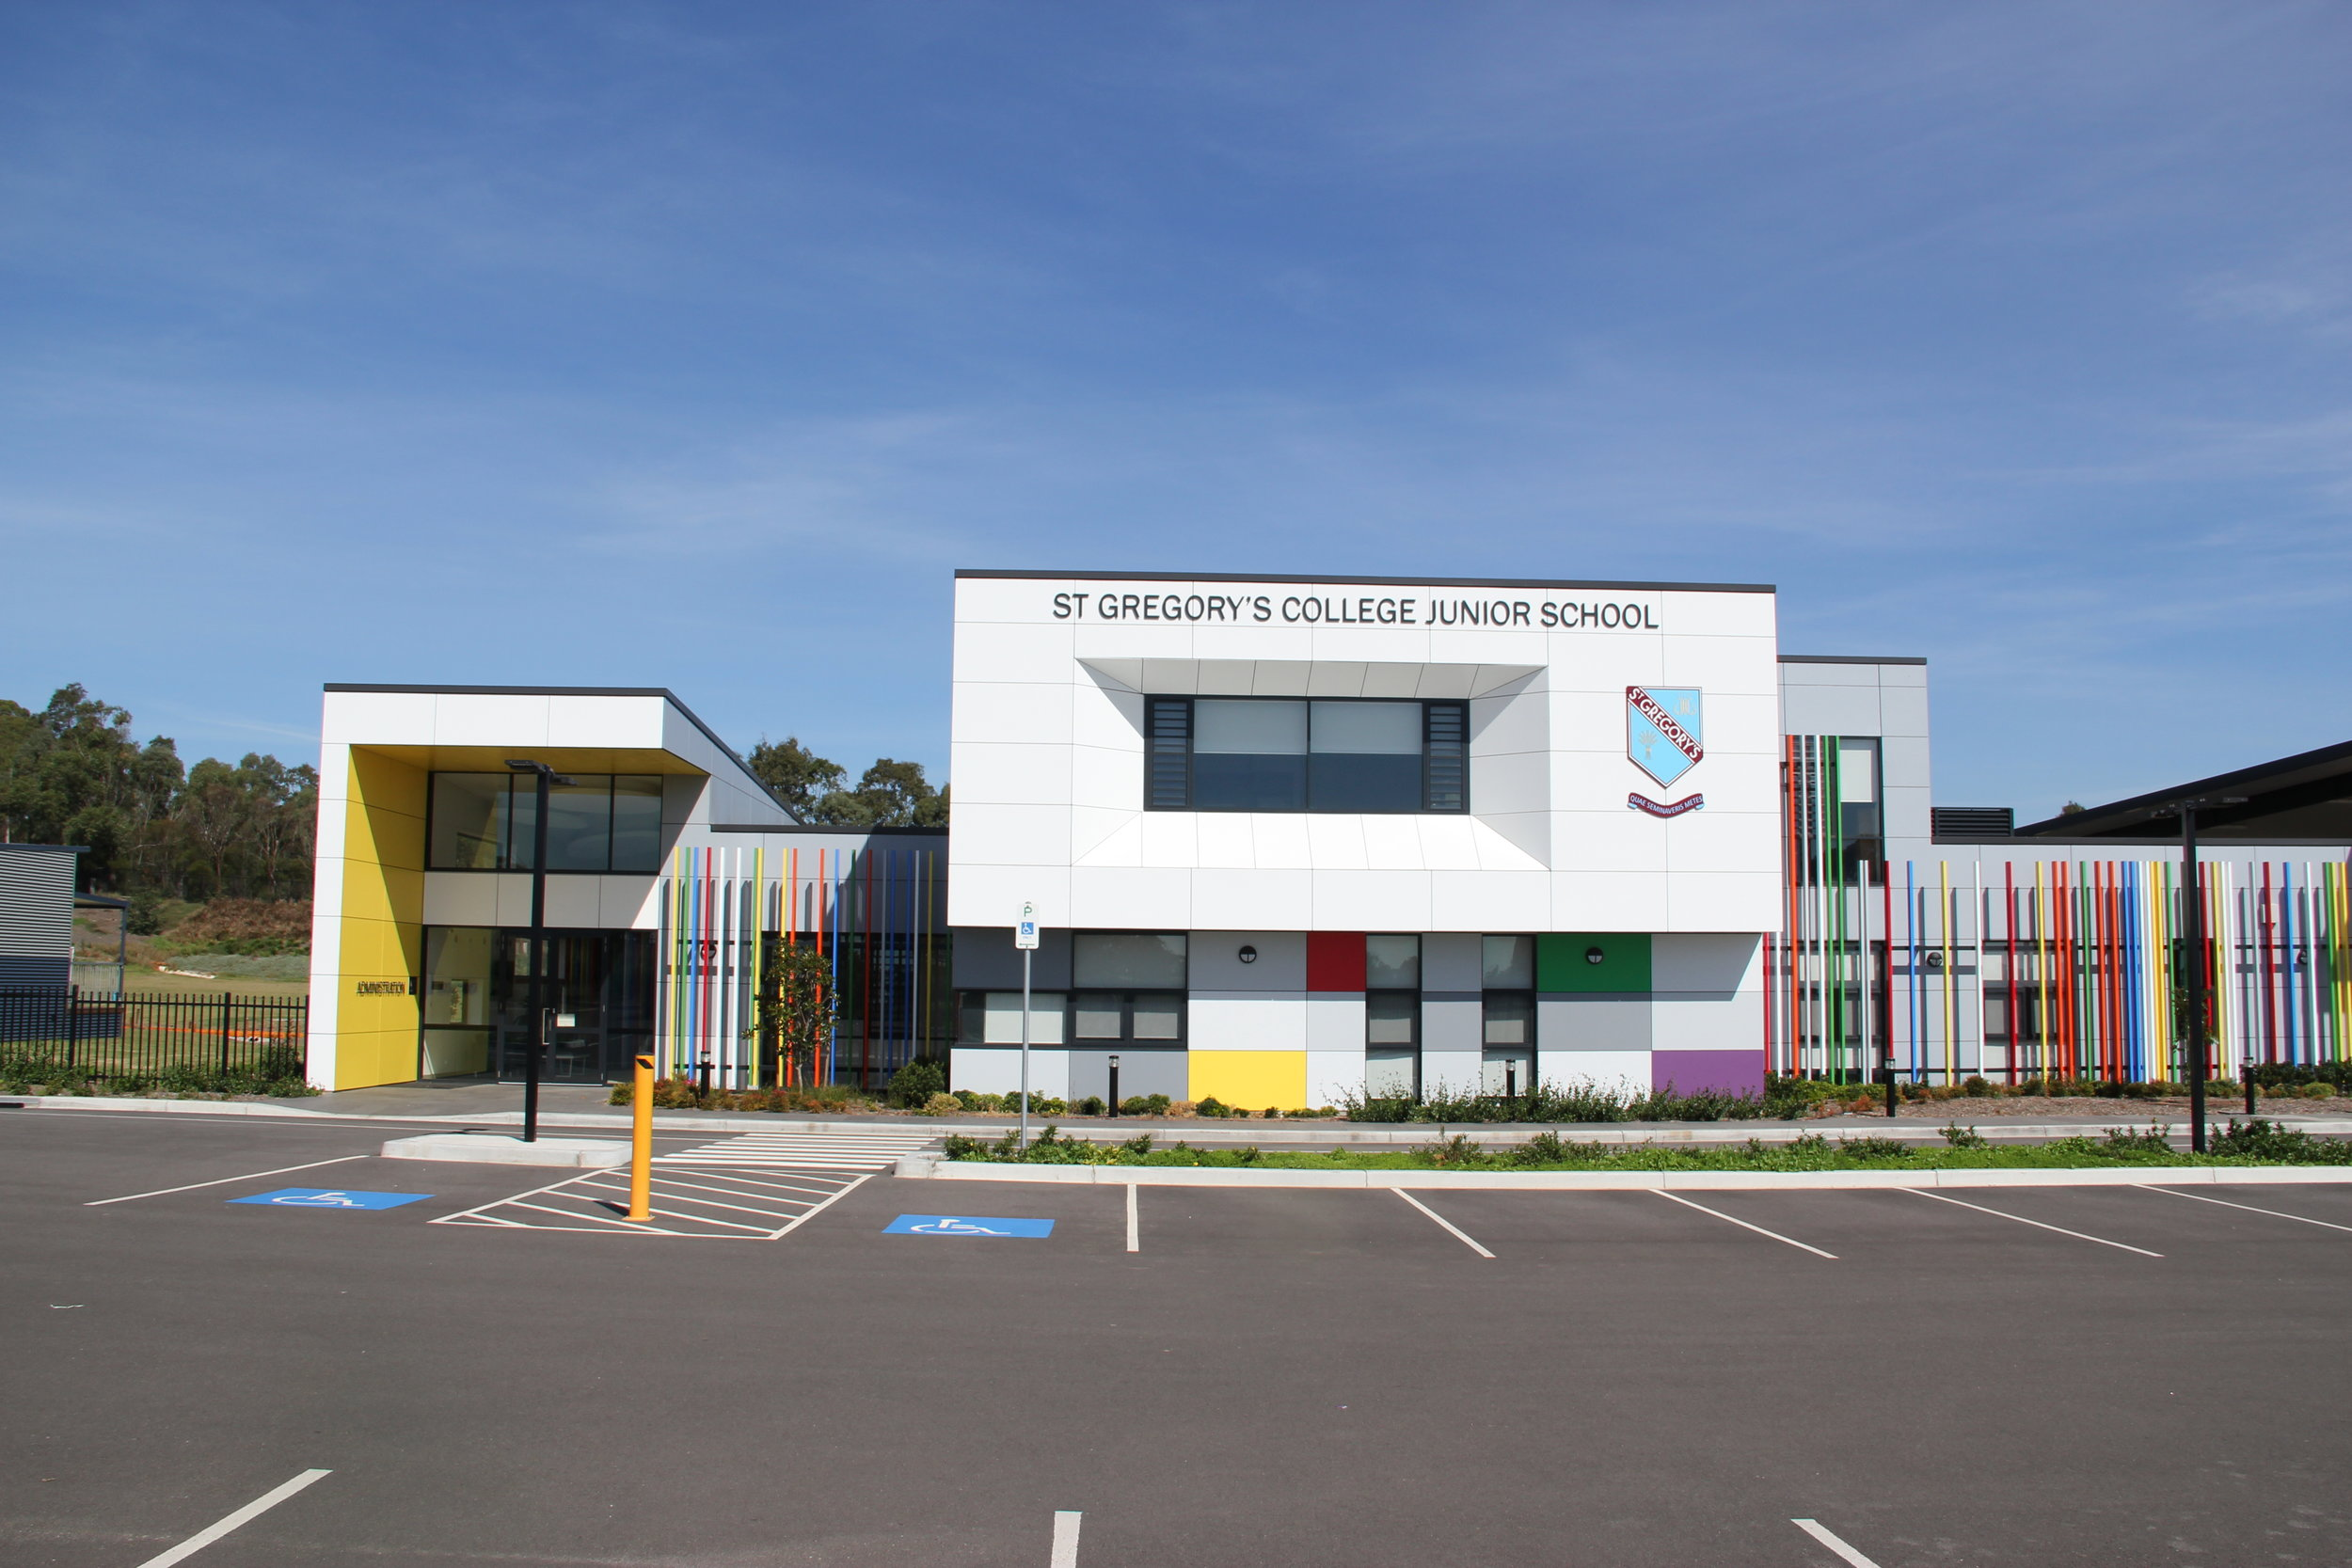 St Gregory's College Junior School